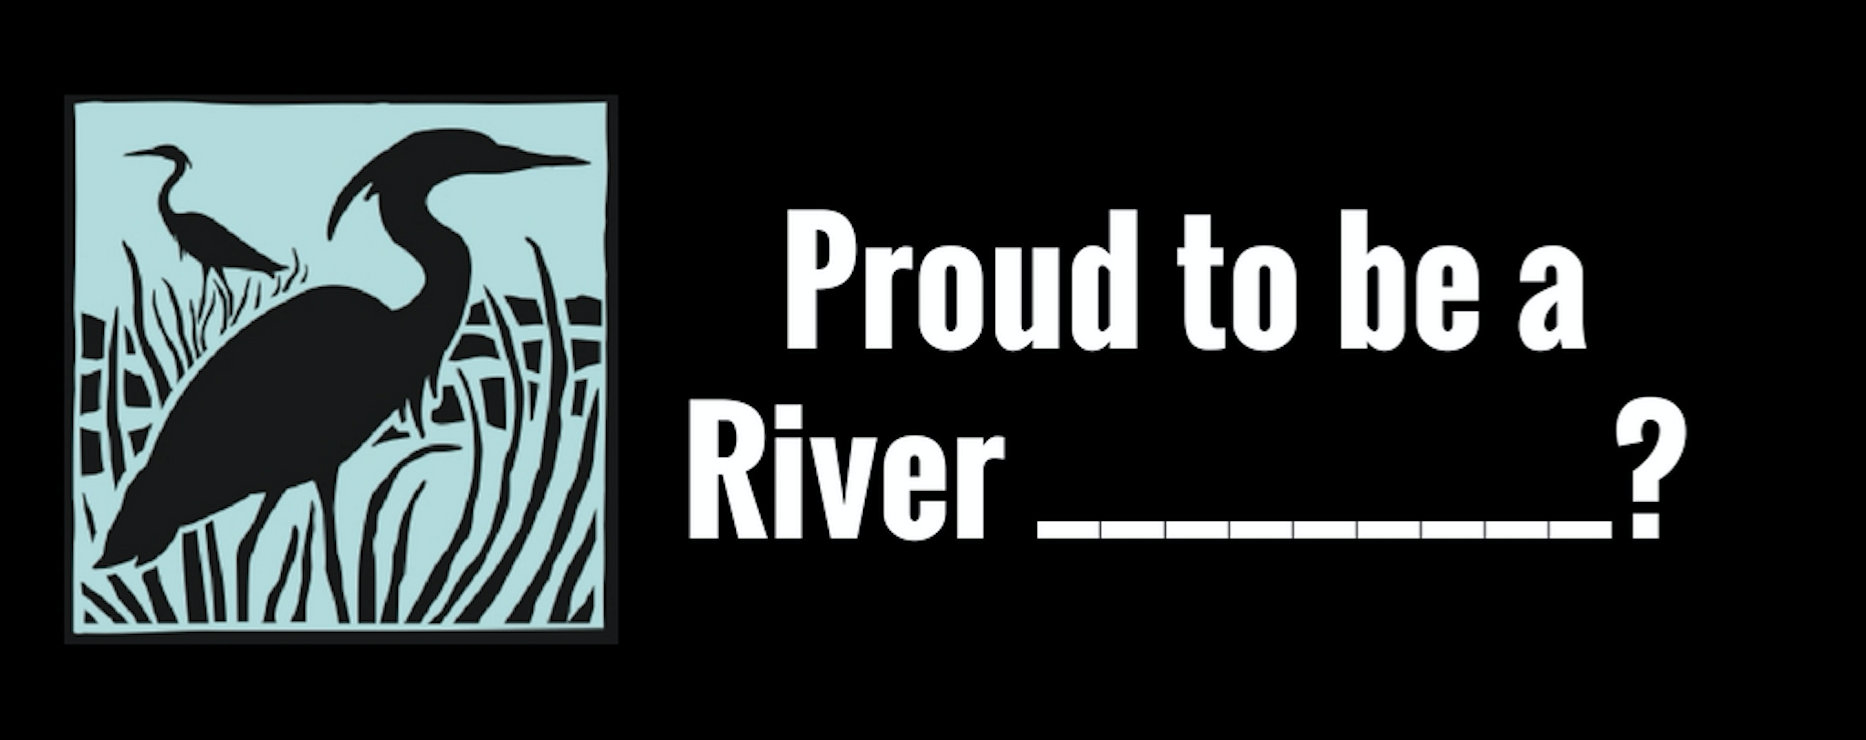 Proud to be a River _________ (?).